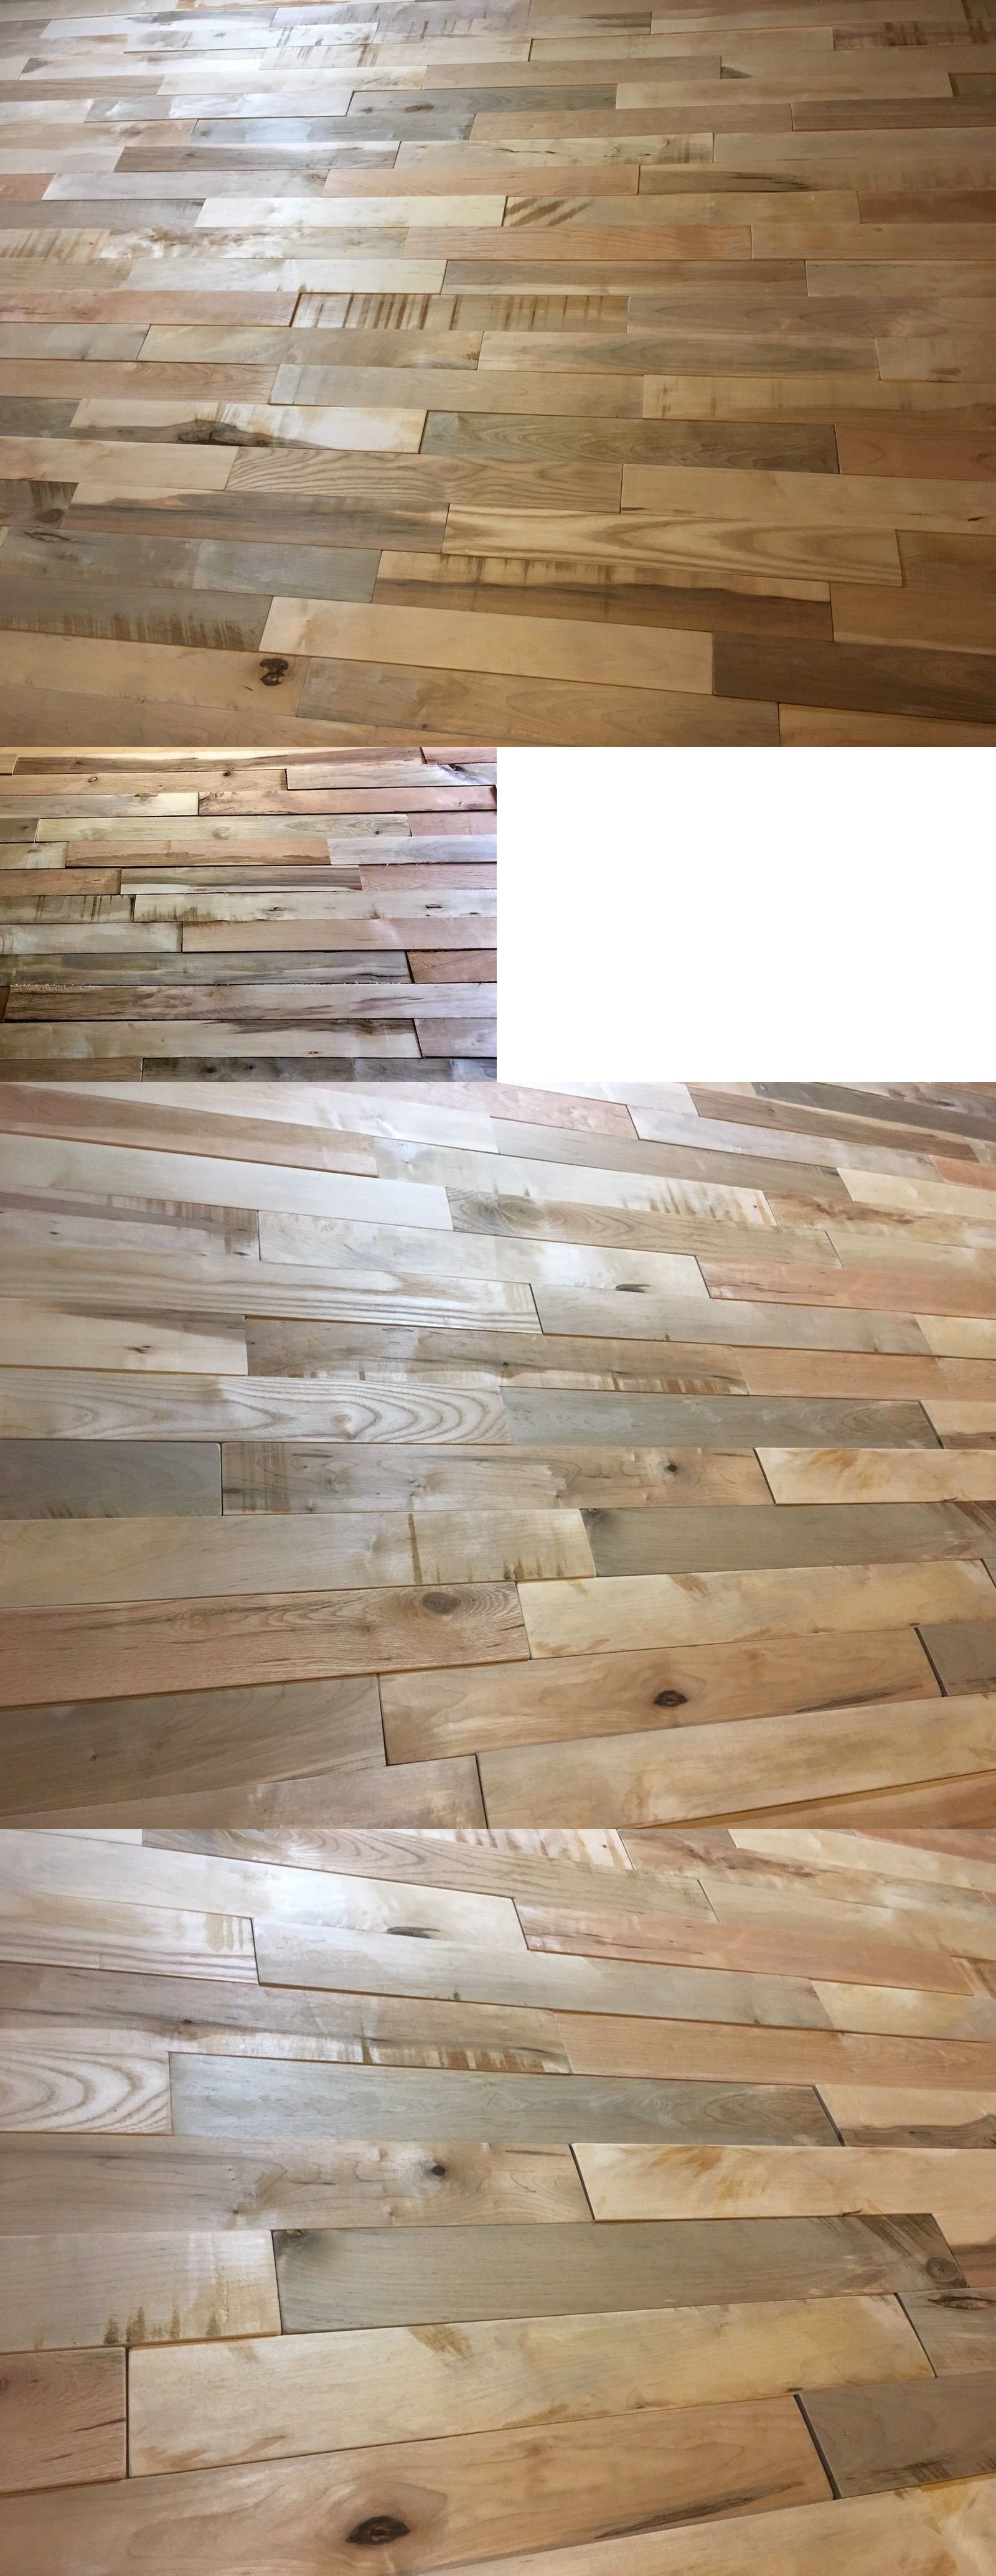 Woodworking Lumber Shiplap Wall Planks Planed Sq